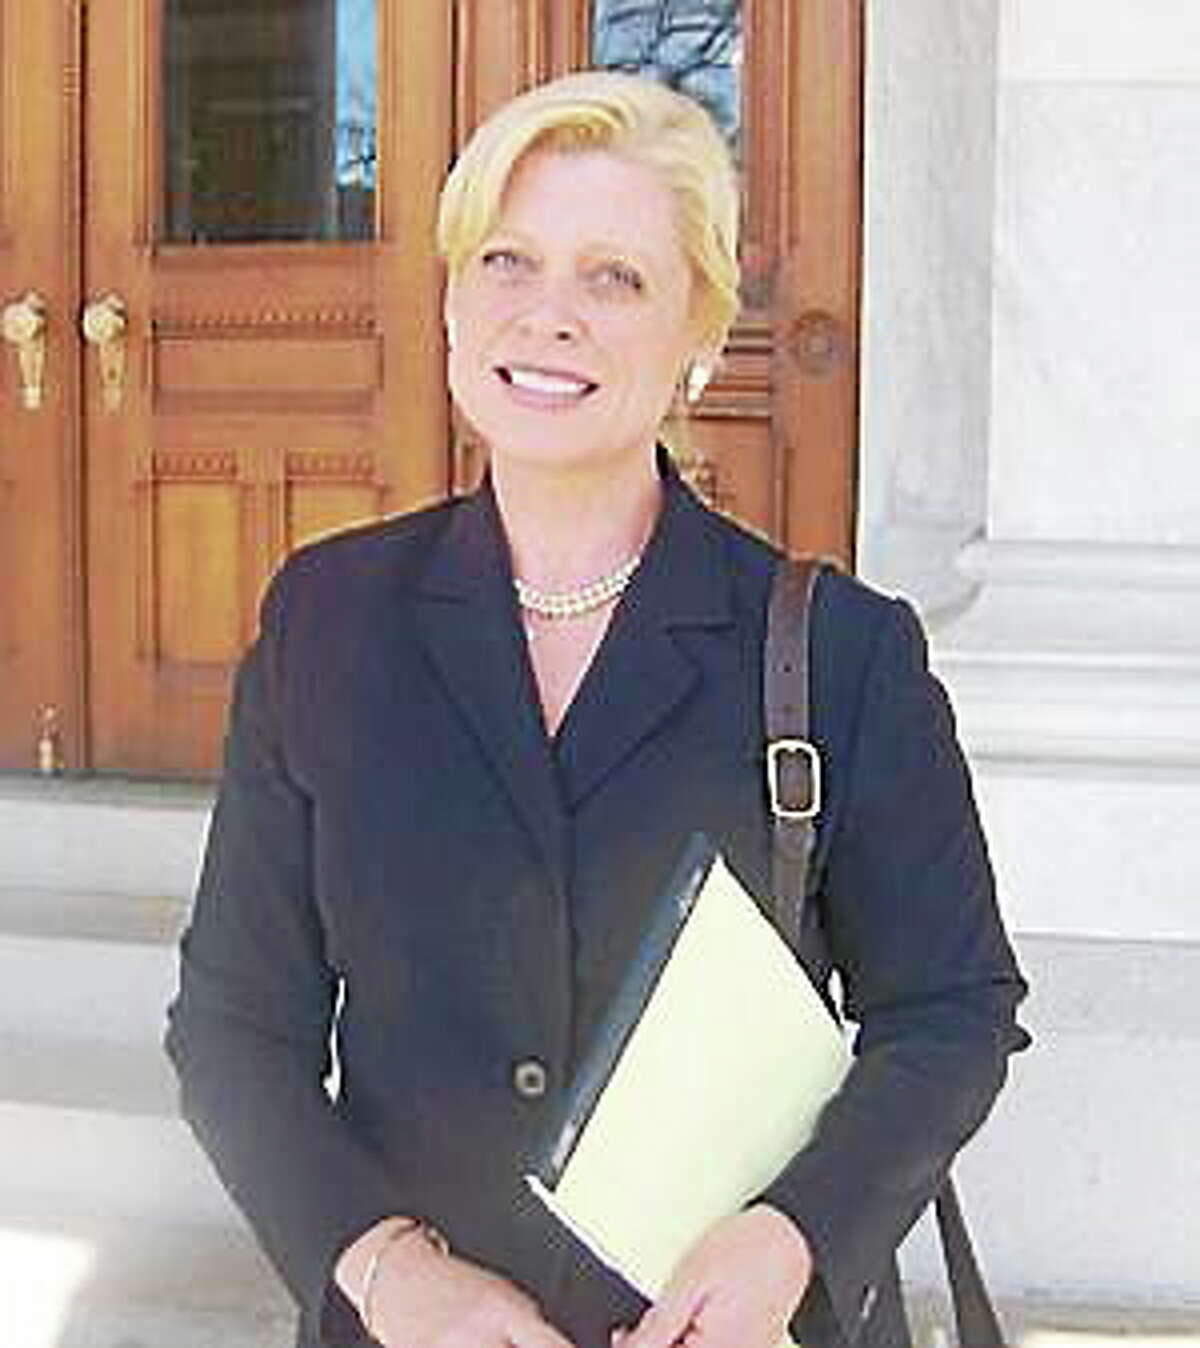 Avon attorney Martha Dean was the Republican nominee for attorney general of Connecticut in 2002 and 2010.